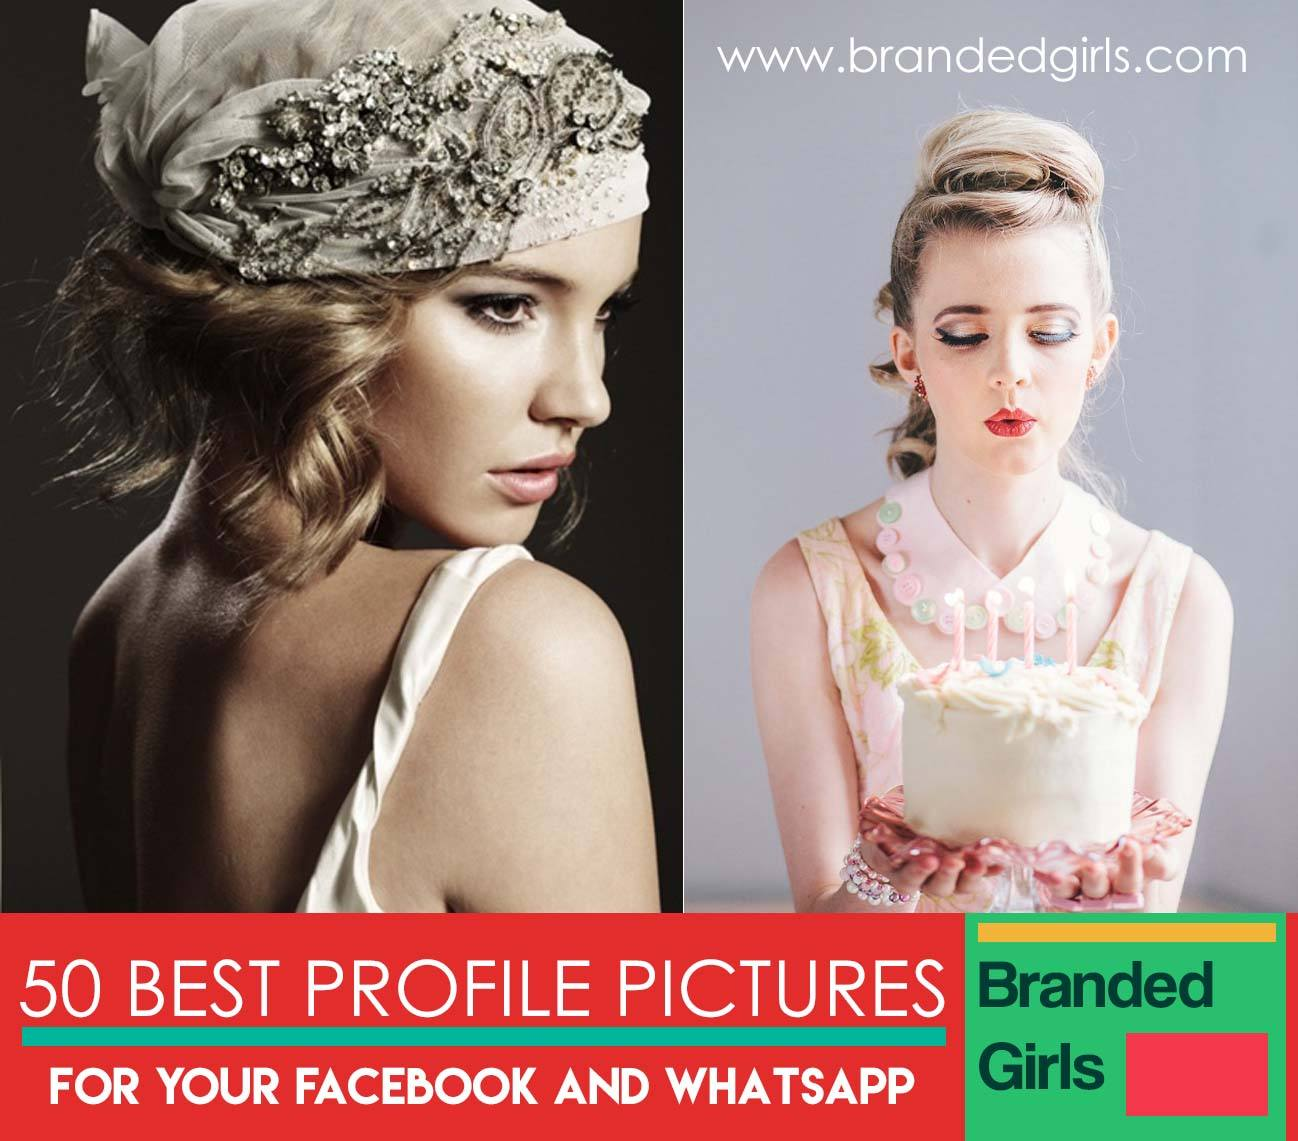 polyvore-sample-20 Beautiful Display Pictures-50 Best Profile Pictures for Facebook